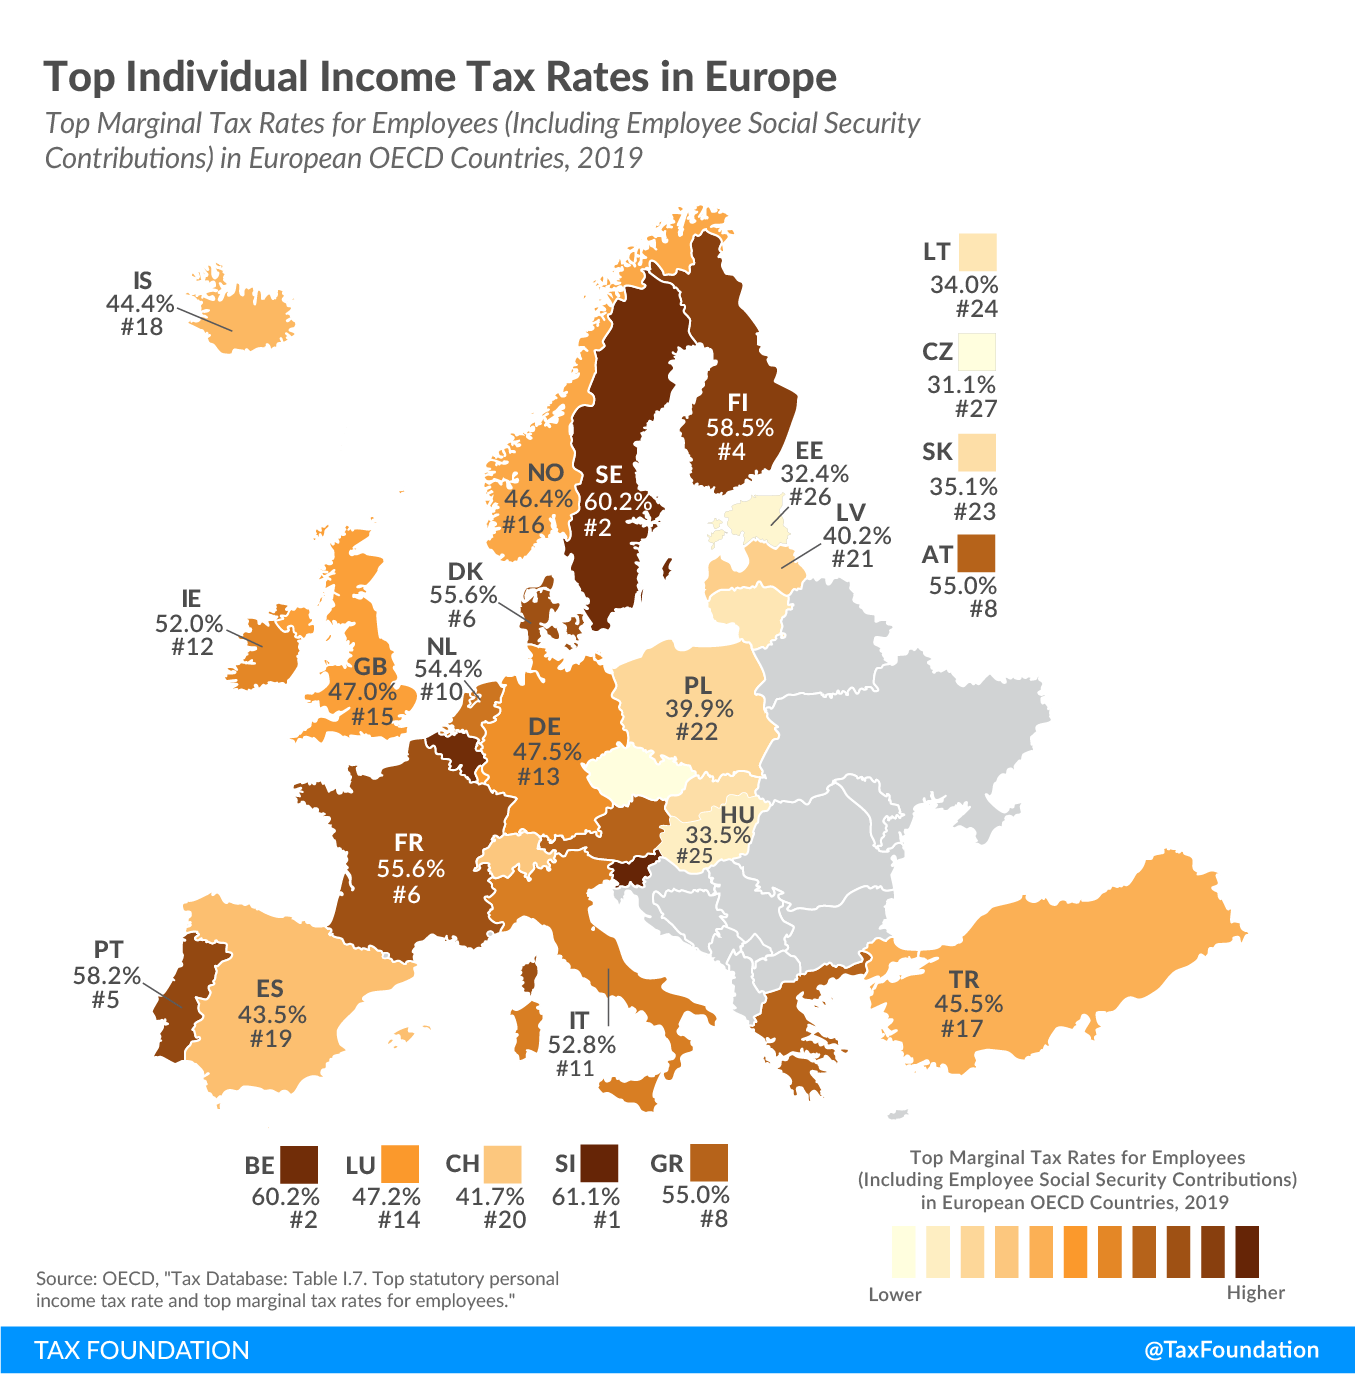 Top Individual Income Tax Rates in Europe, top marginal tax rates for employees (including employee social security contributions) in European OECD Countries